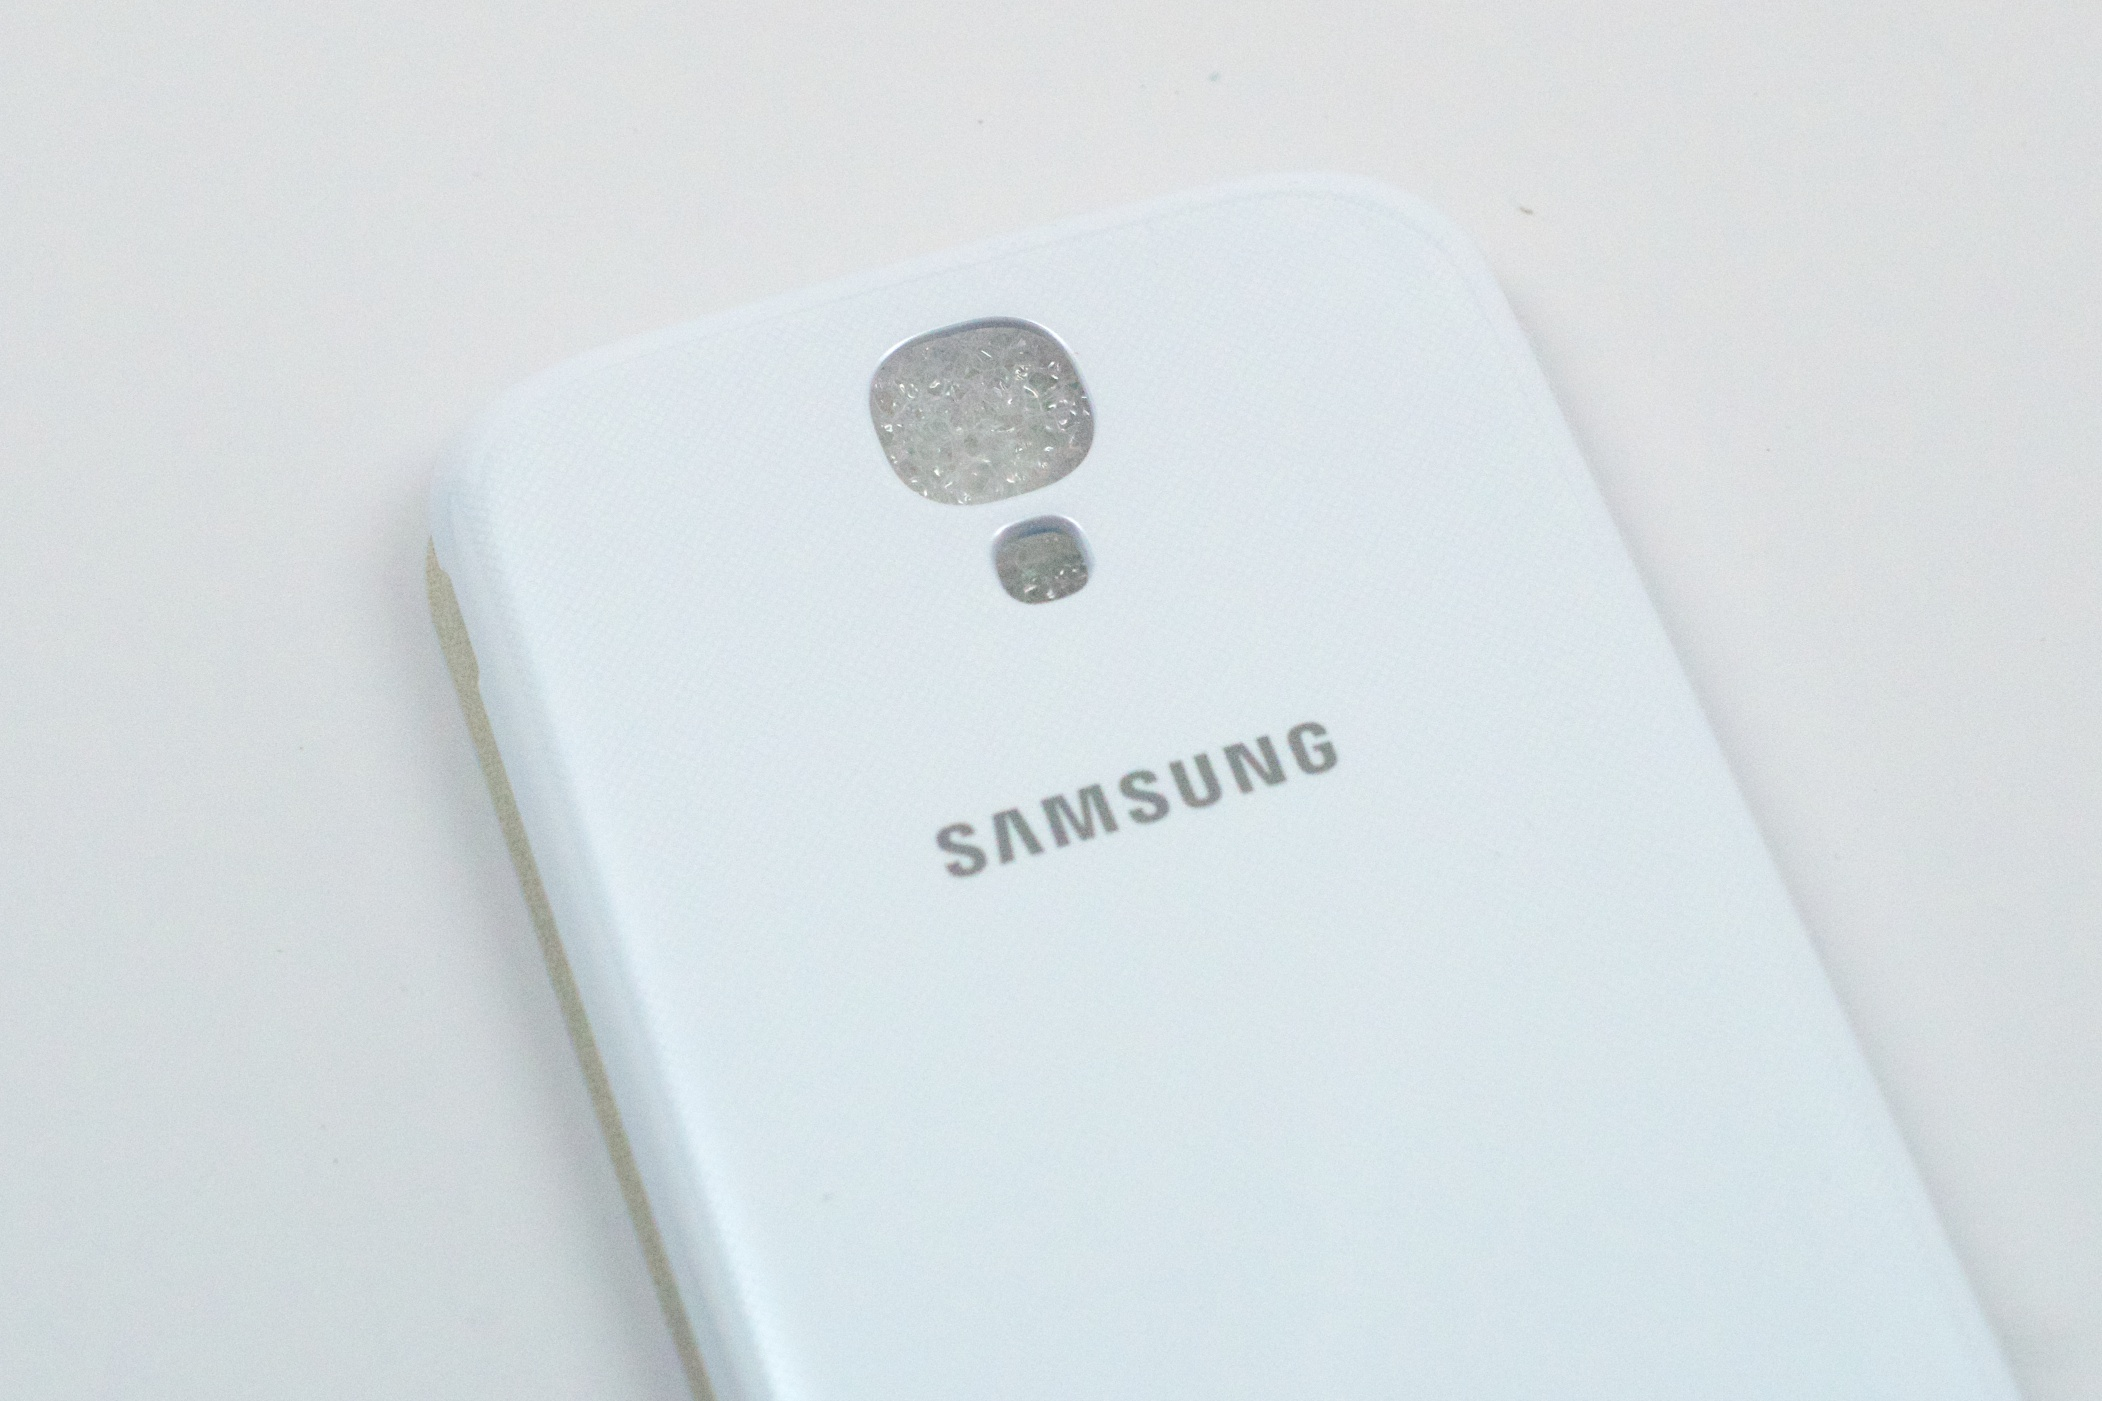 Samsung galaxy s4 flip cover hands on video the att galaxy s4 has begun to ship to those who pre ordered ccuart Gallery